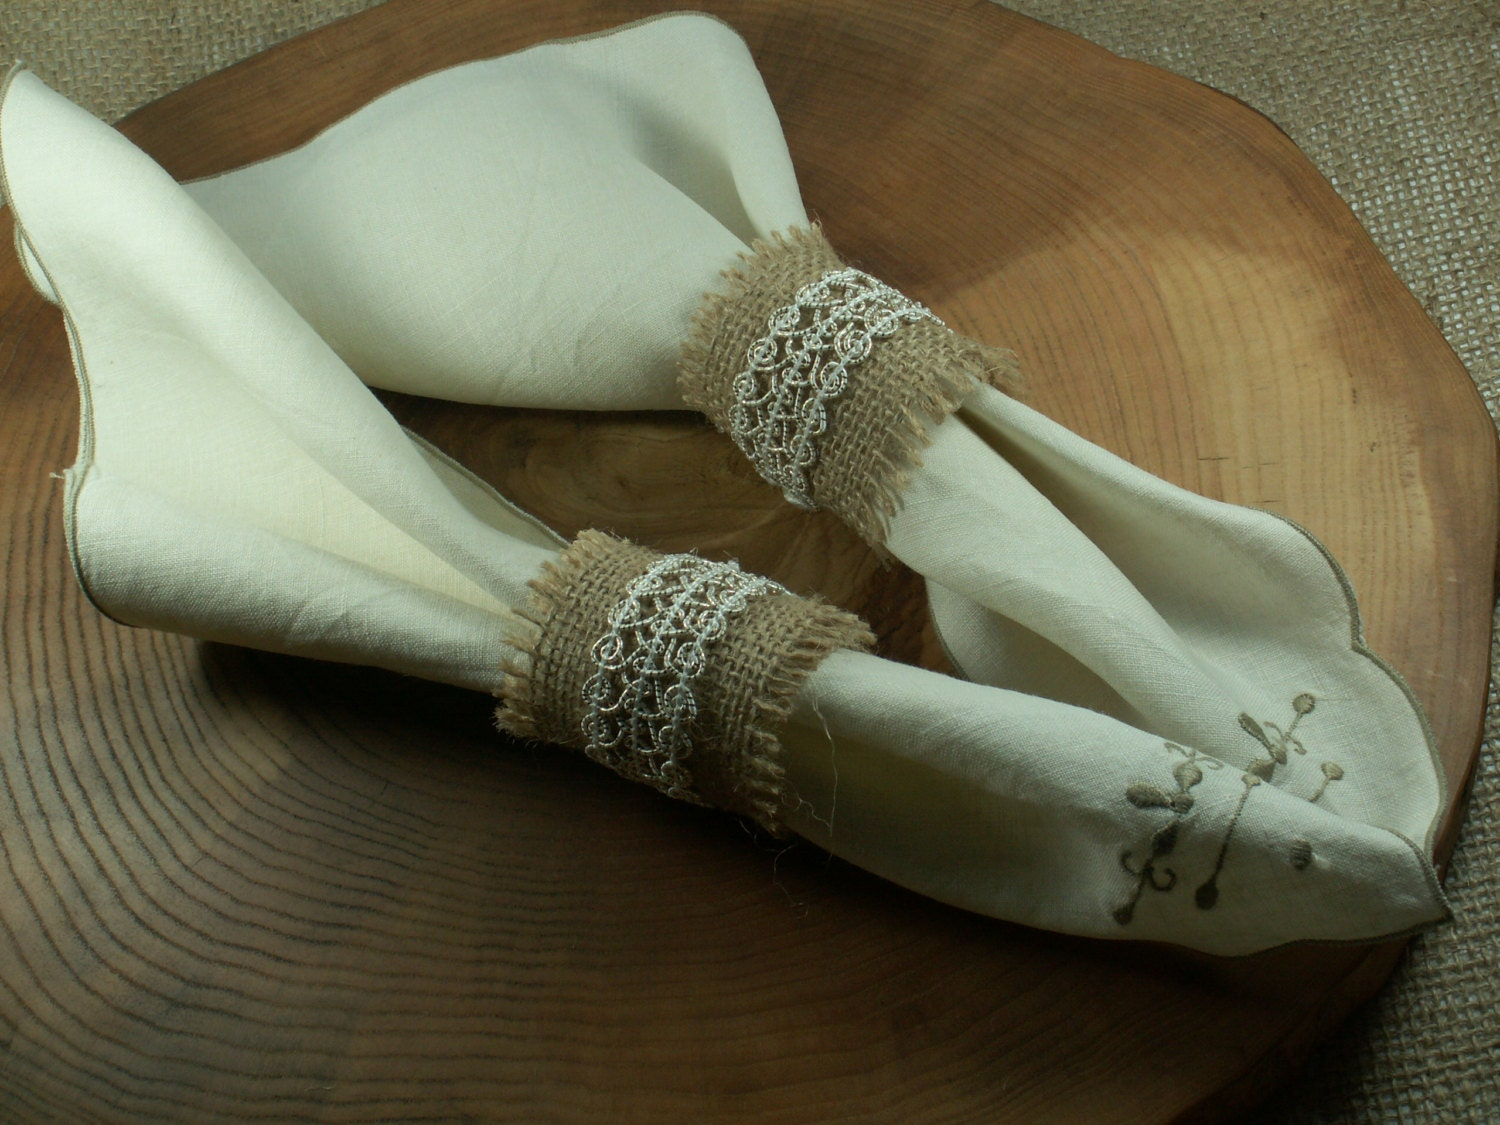 Rustic Style Rustic 60 Burlap Napkin Rings with lace Wedding